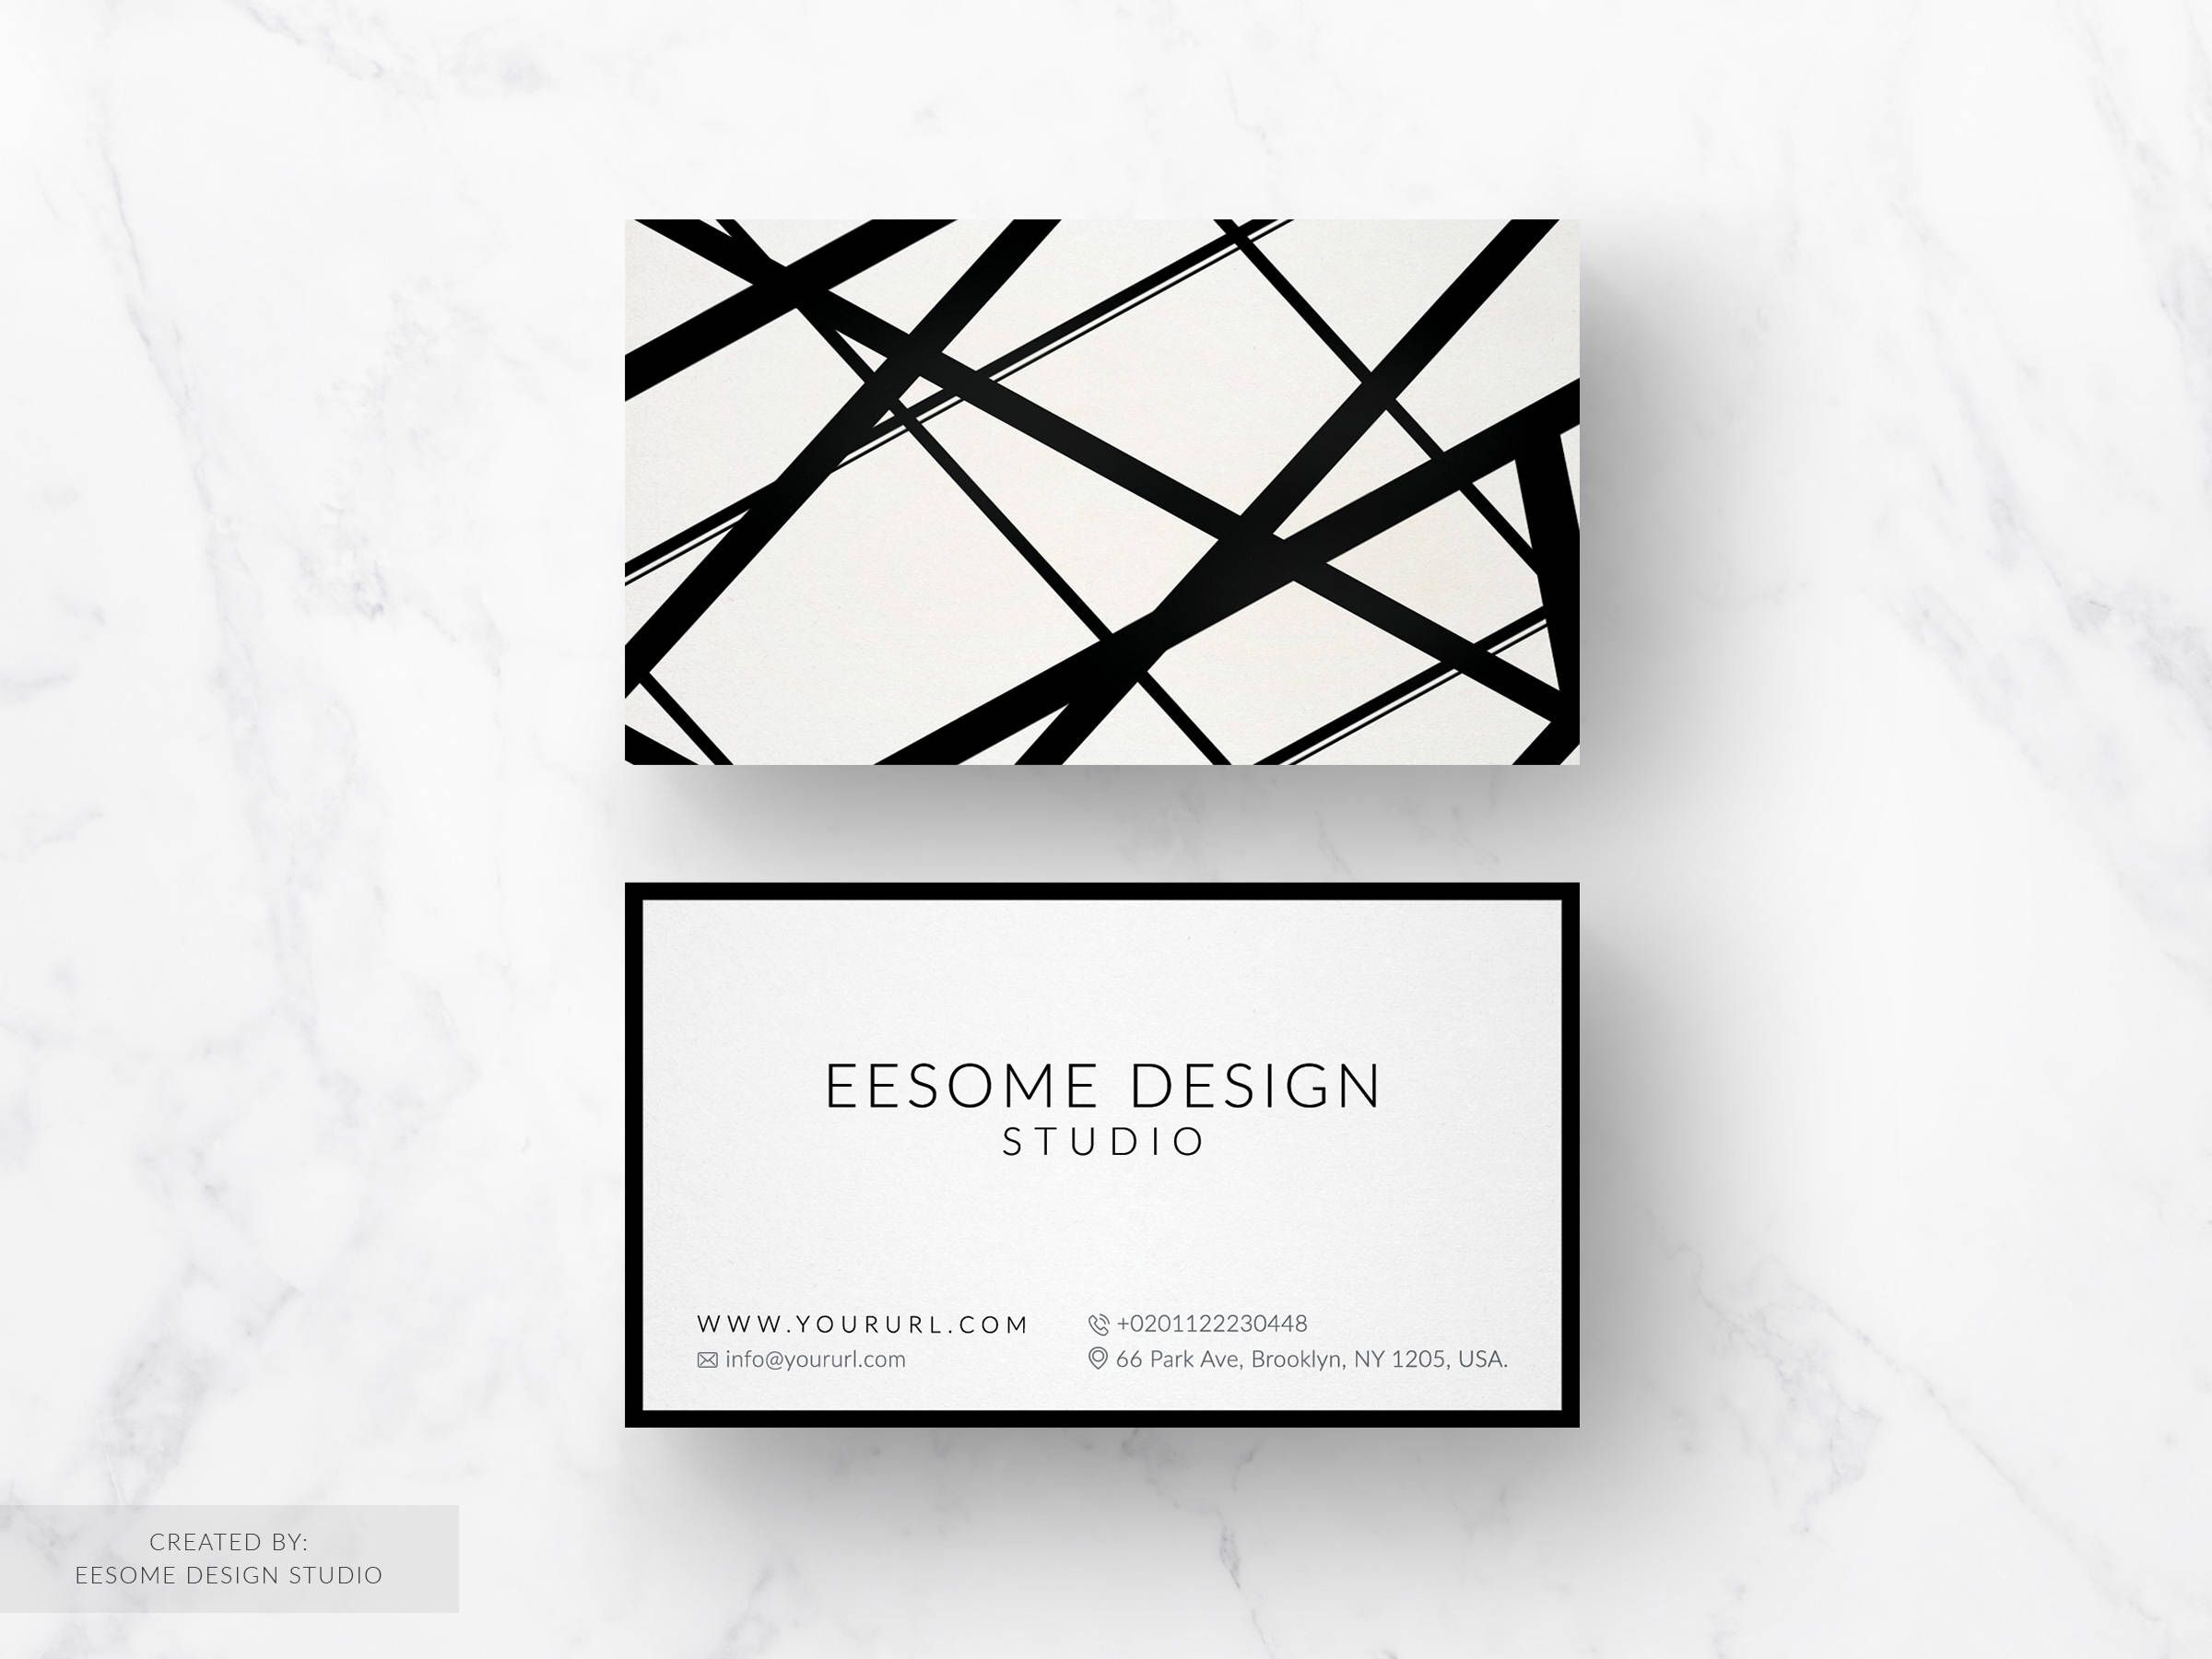 Business card template printable business card design business business card template printable business card design business card template custom business card photoshop psd business card design fbccfo Choice Image